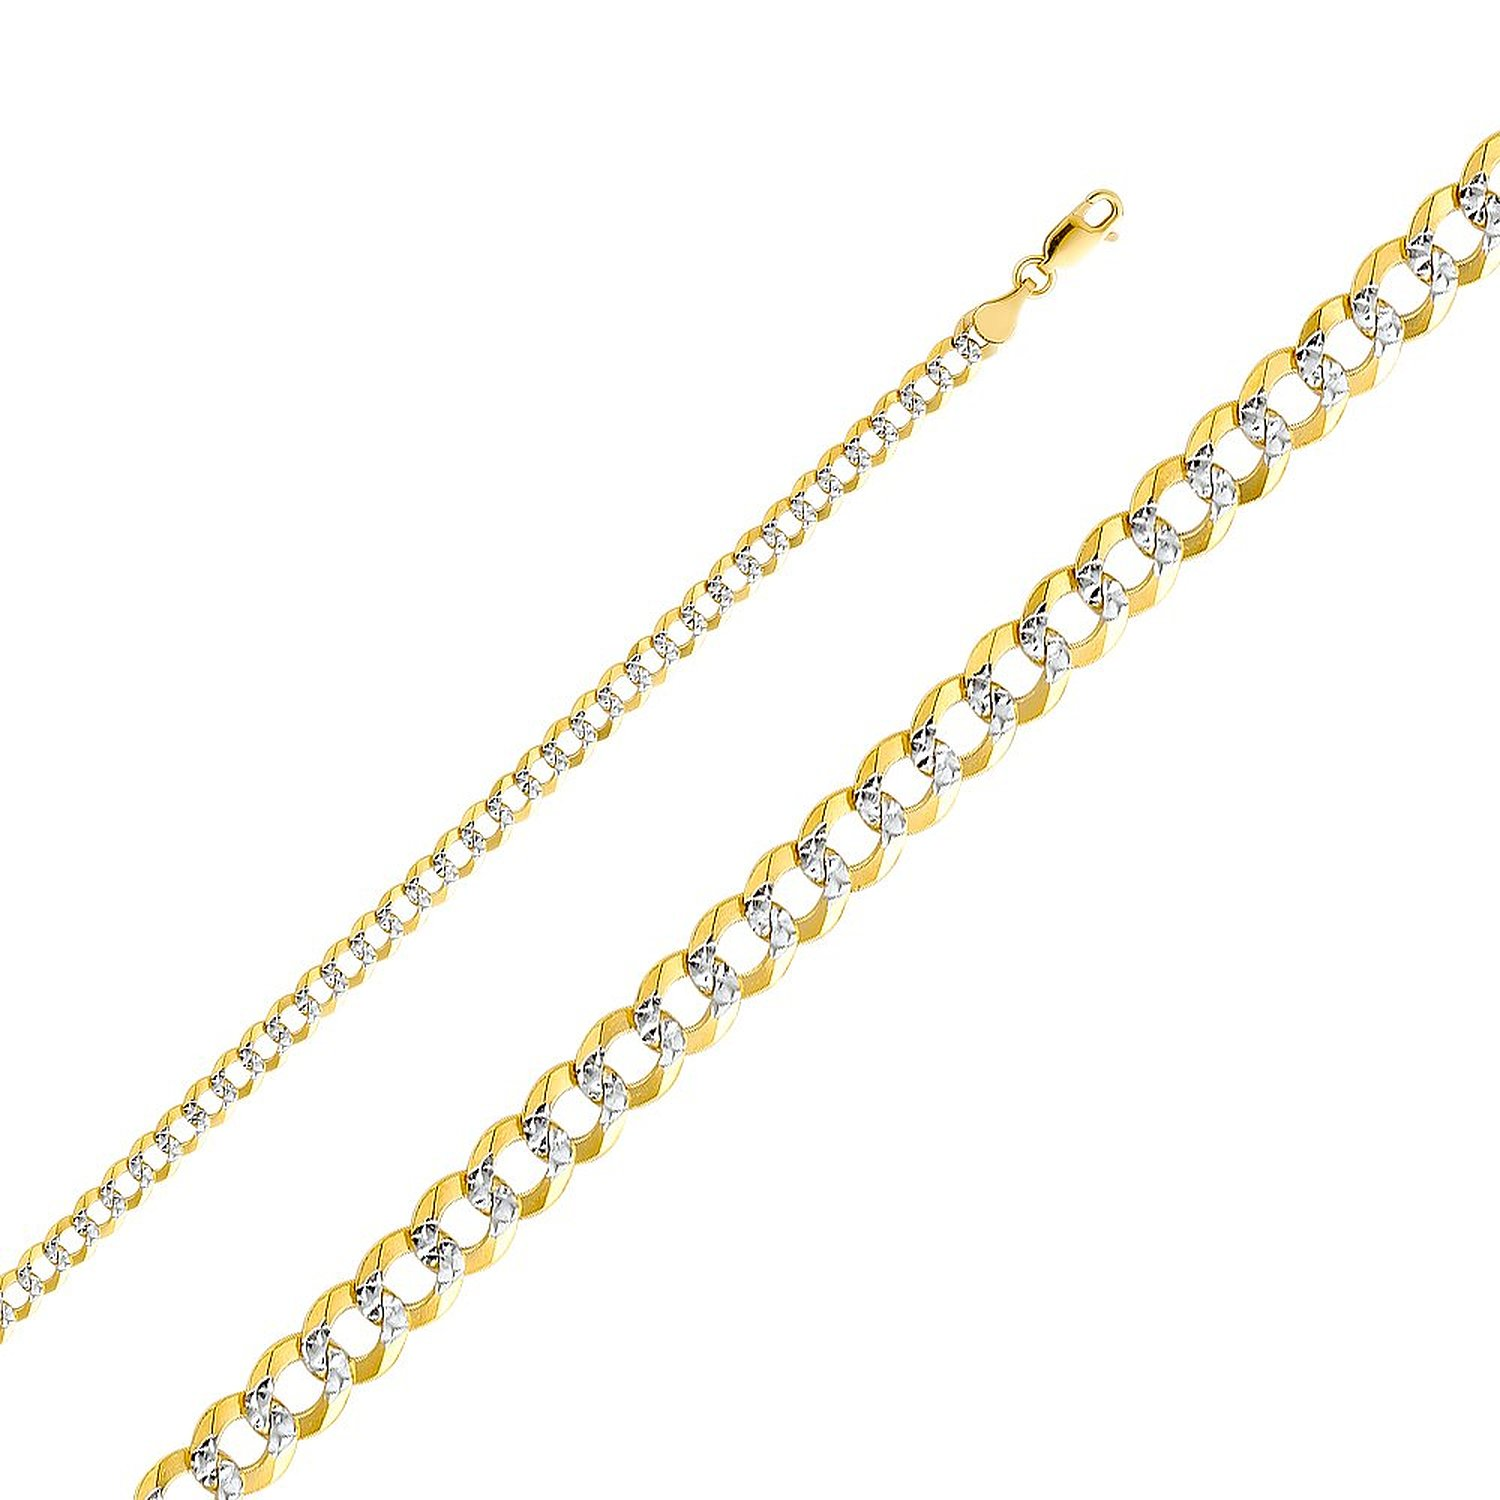 Wellingsale® 14k Two Tone Yellow and White Gold SOLID 4.7mm Polished Cuban Concaved Curb White Pave Diamond Cut Chain Necklace with Lobster Claw Clasp - 24"